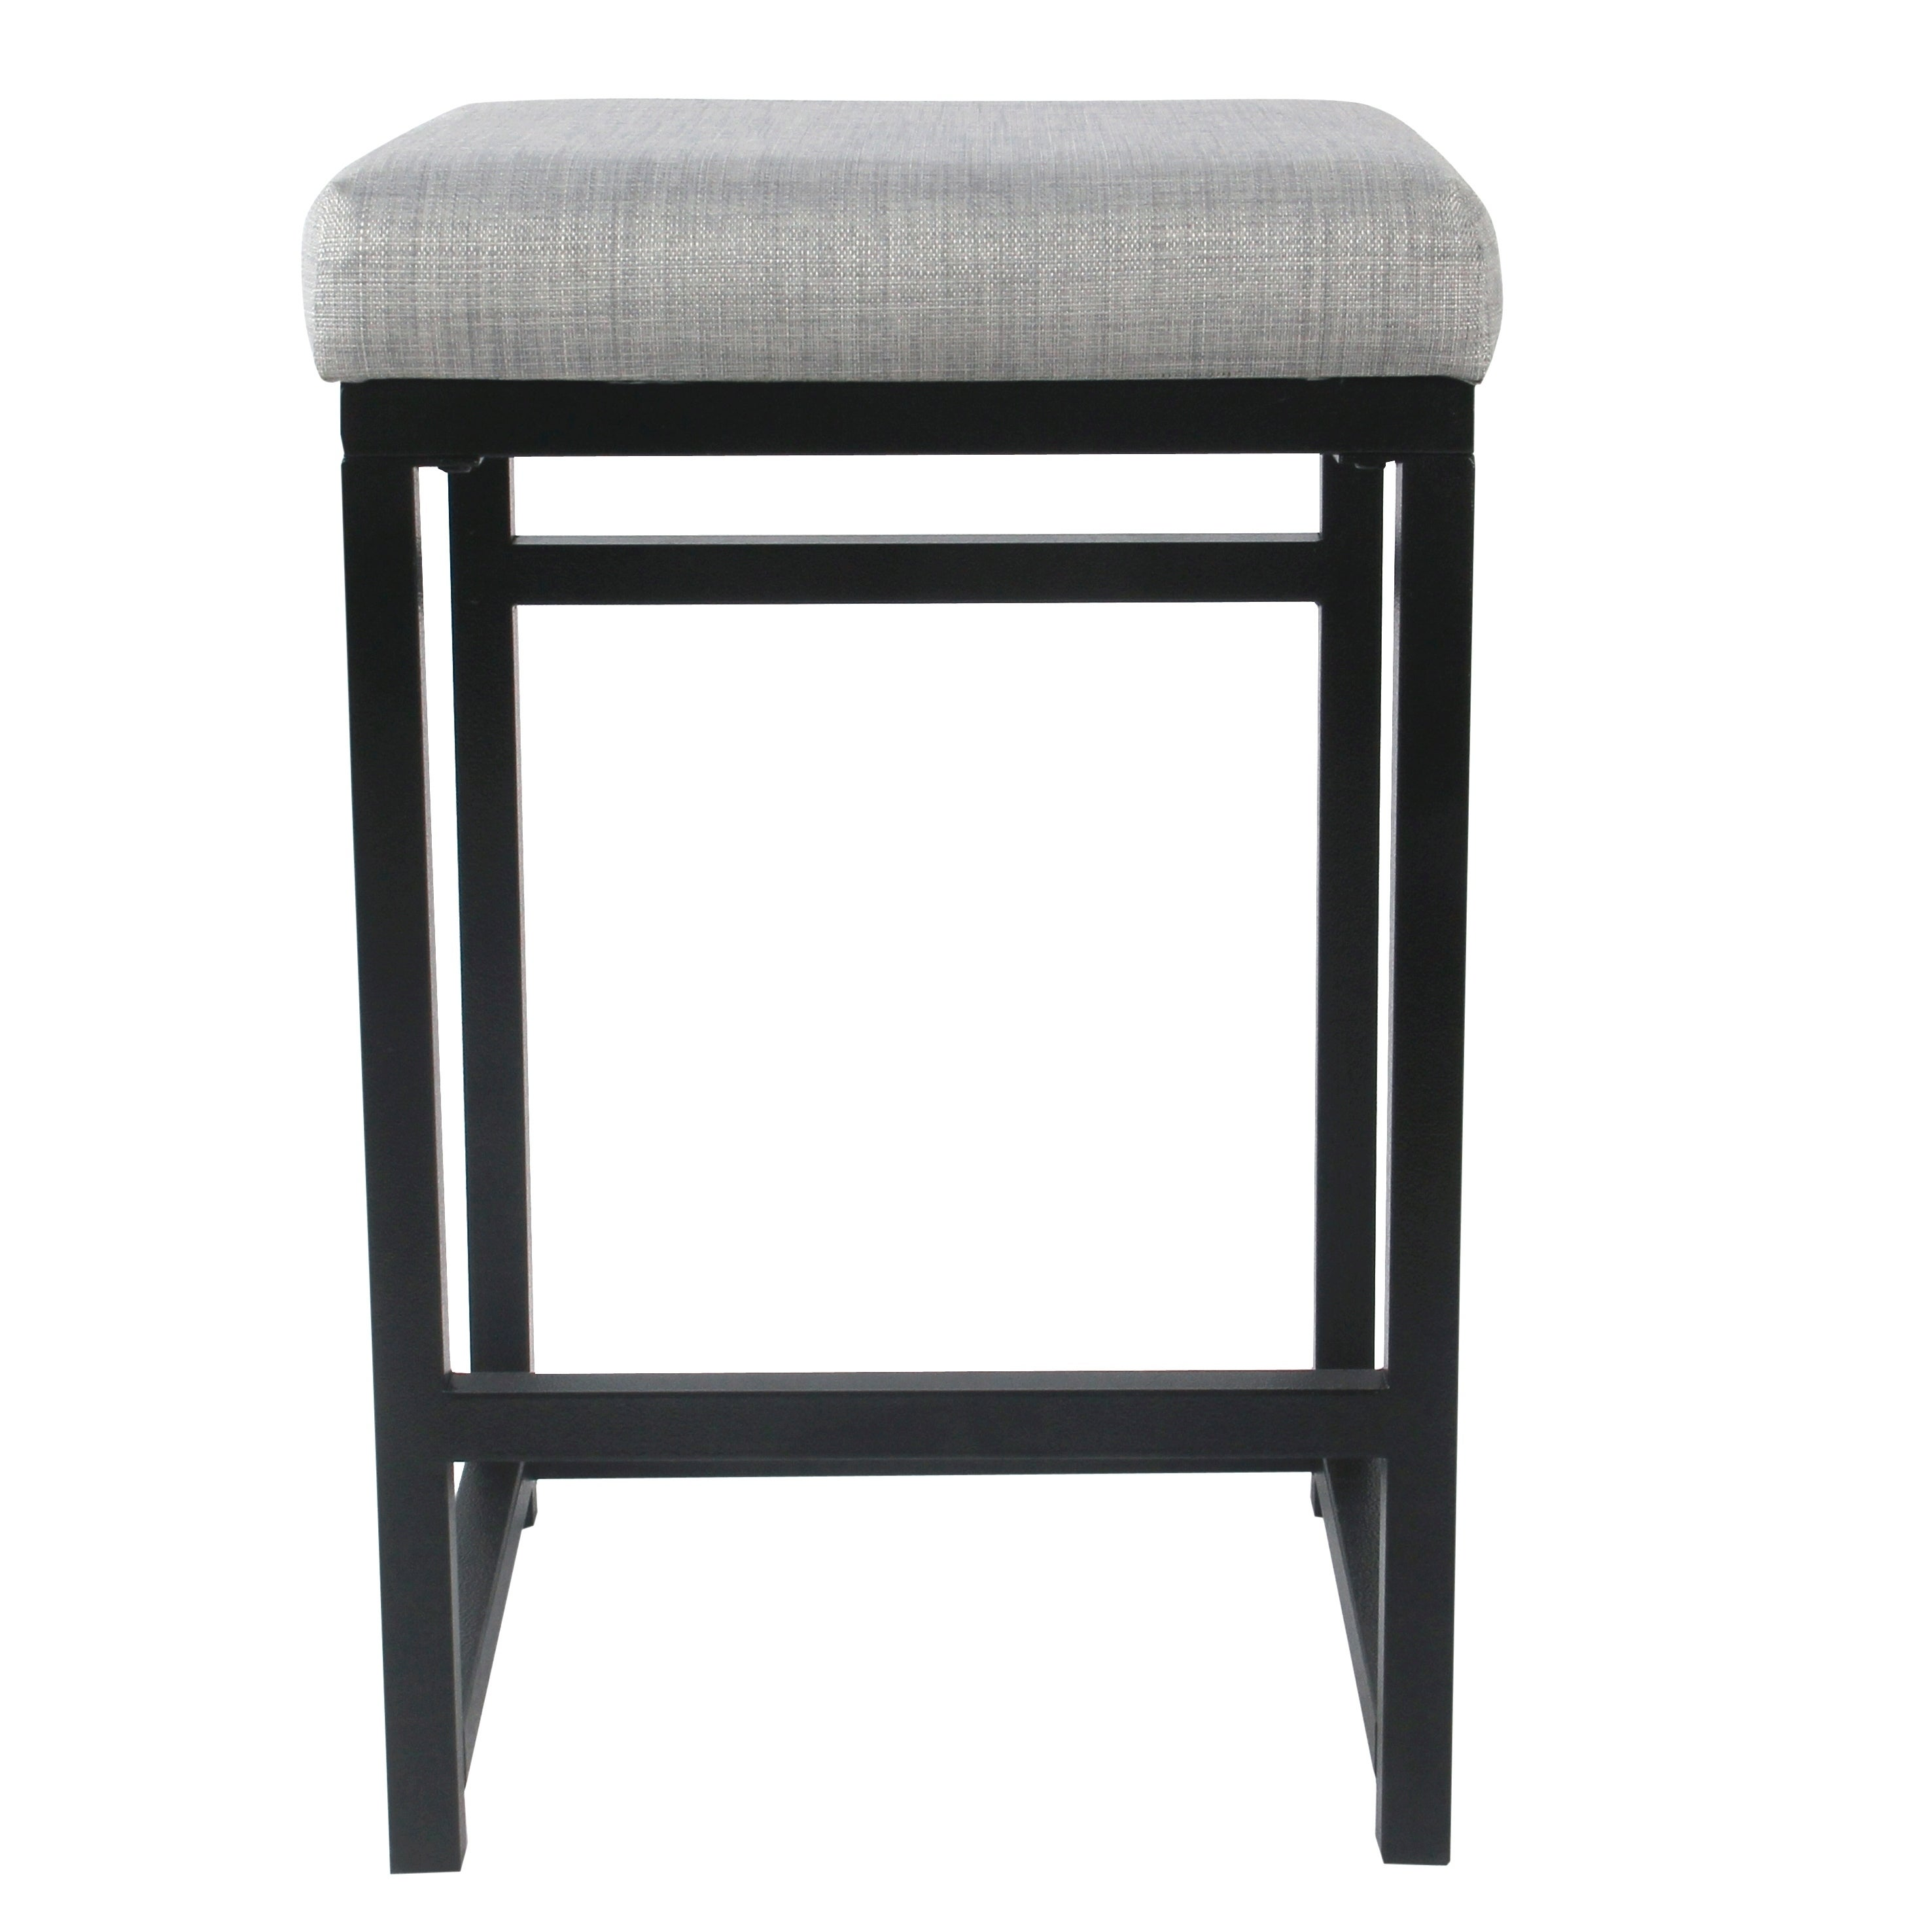 Stupendous Homepop Open Back Metal 24 Counter Stool Squirreltailoven Fun Painted Chair Ideas Images Squirreltailovenorg